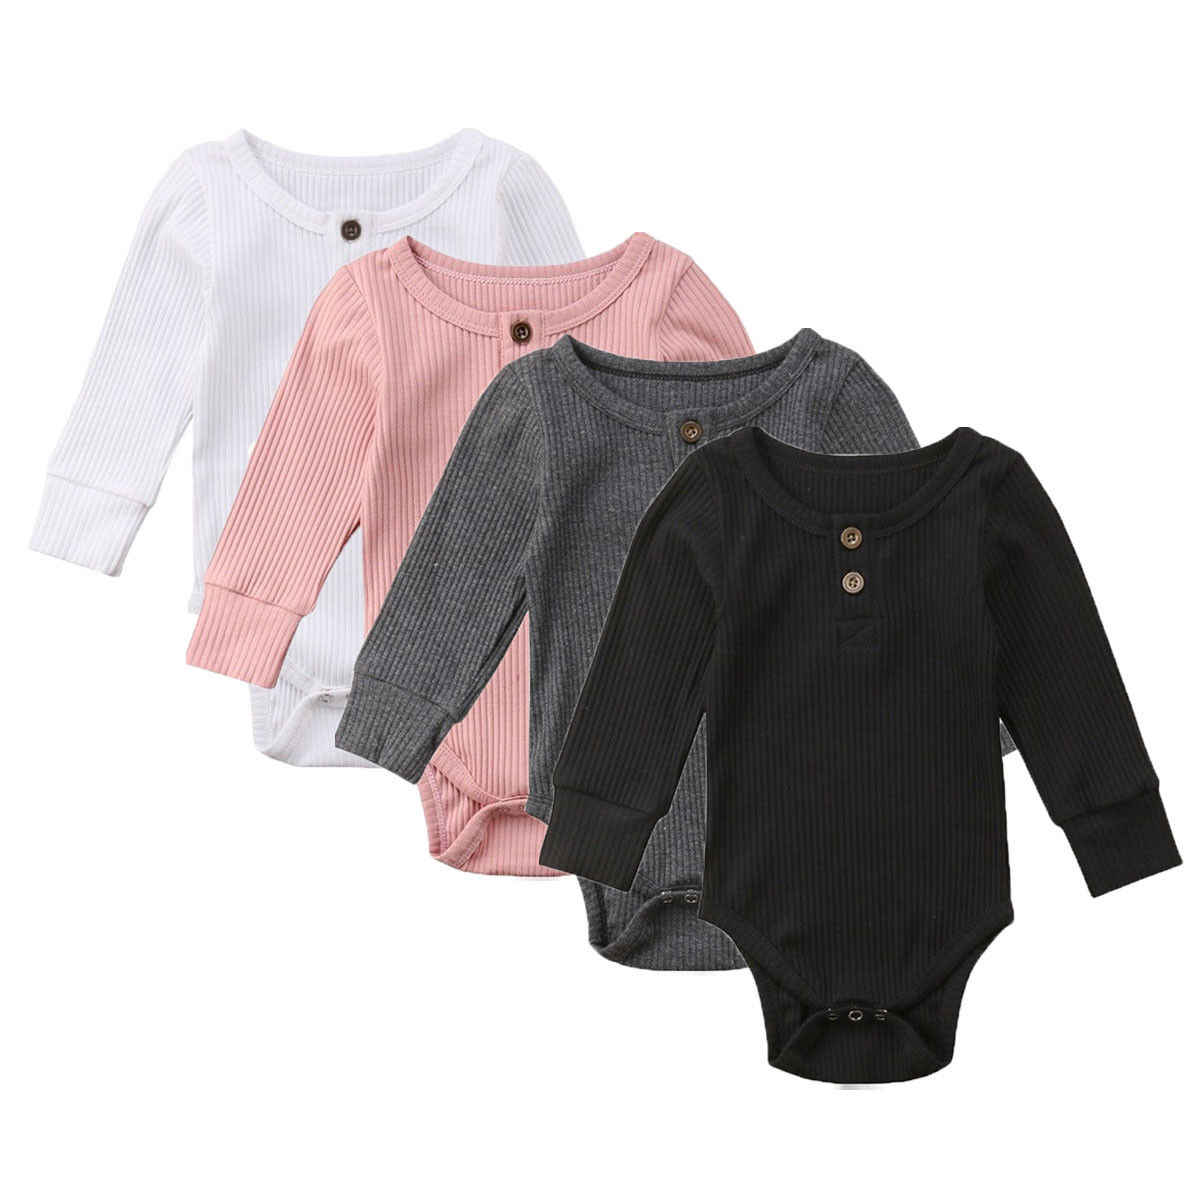 New Newborn Baby Girl  Long Sleeve Clothes Solid Button Girls Knitted Bodysuits Baby Bodysuit Jumpsuit Playsuit Outfits 0-24M